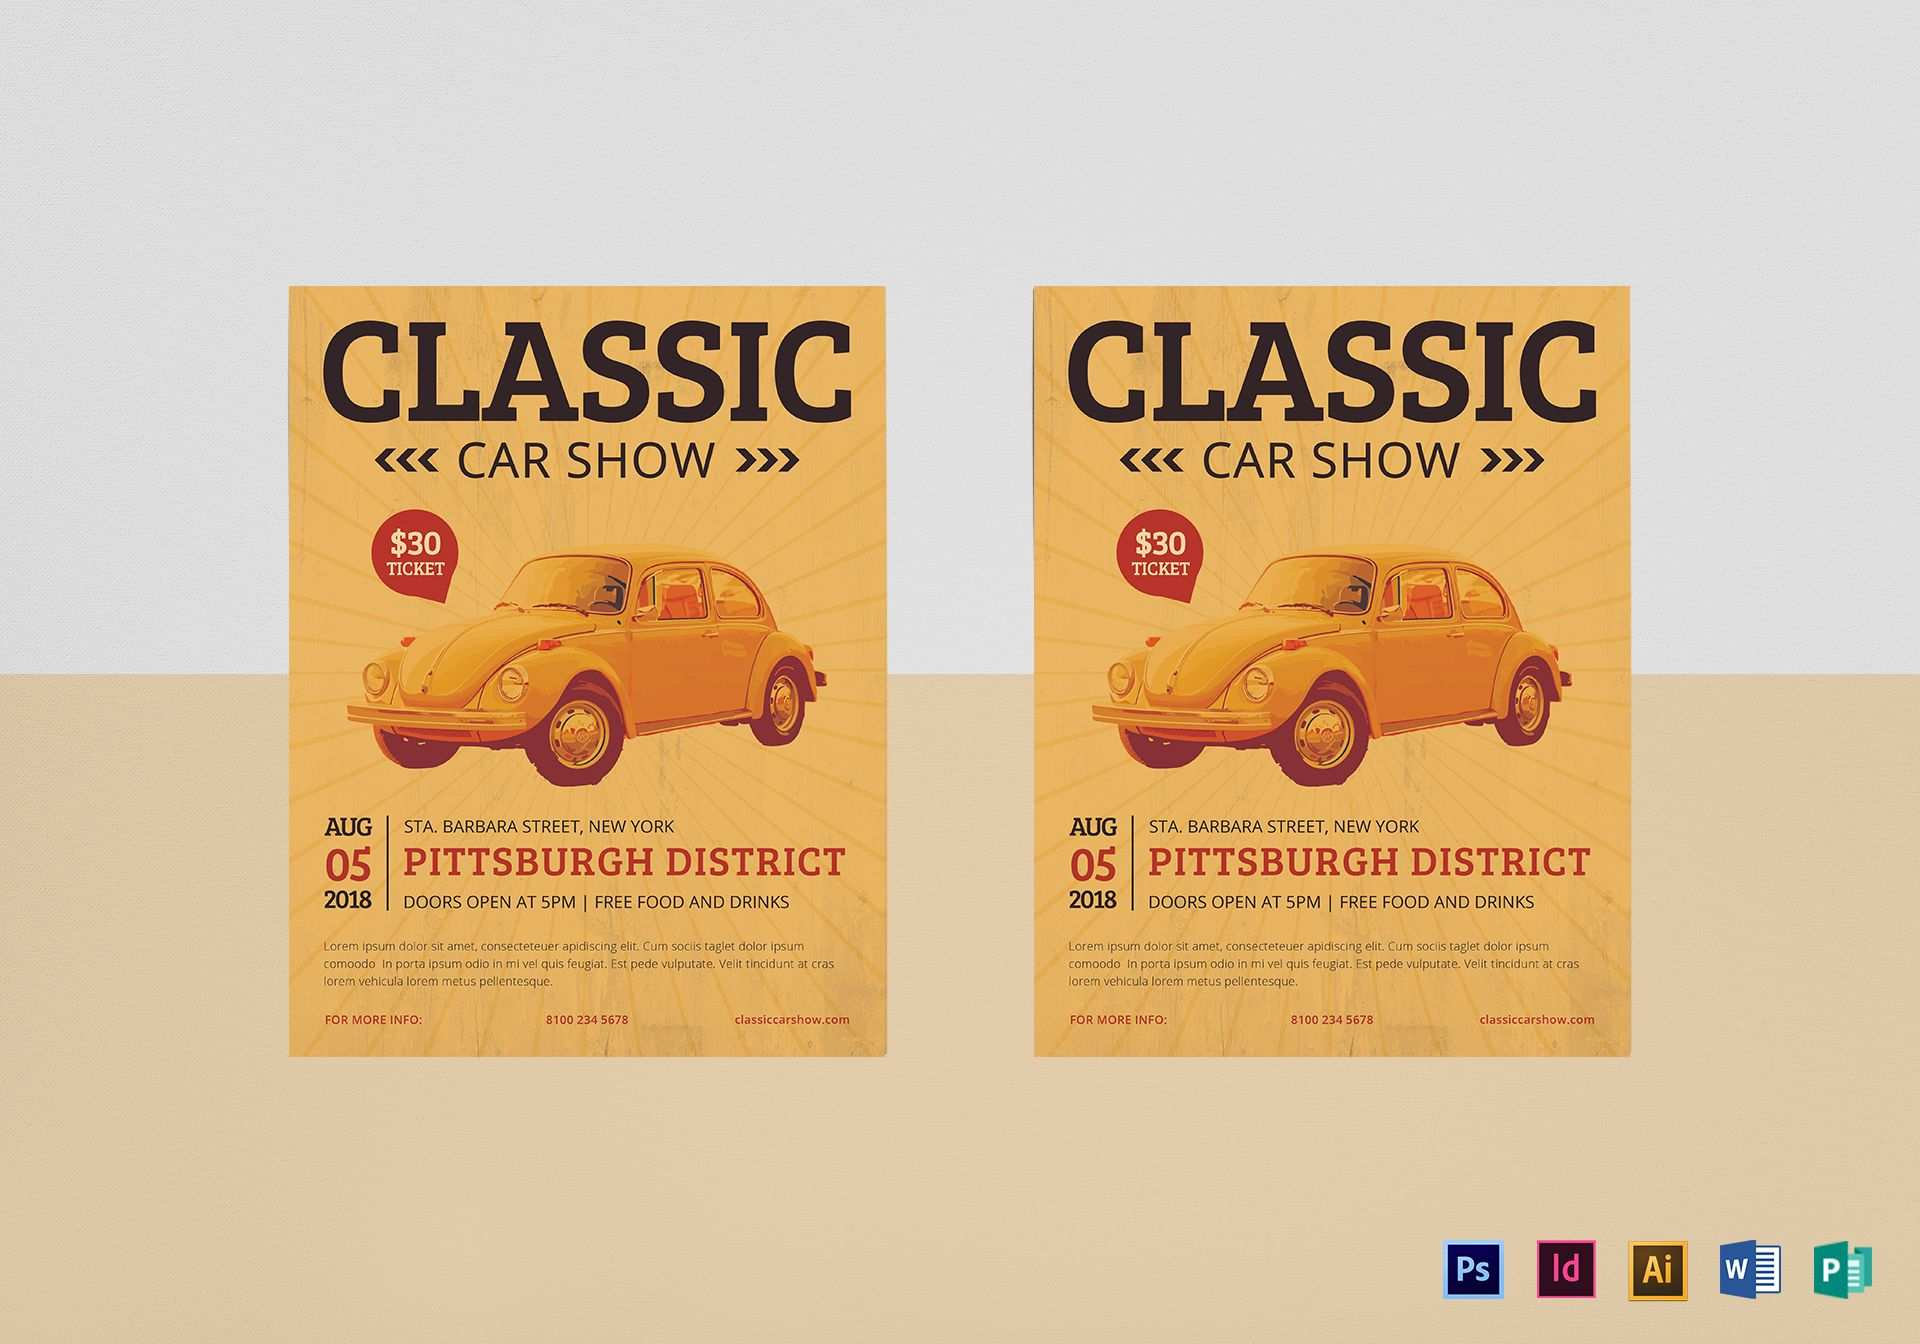 41 Standard Car Show Flyer Template Word With Stunning Design with Car Show Flyer Template Word